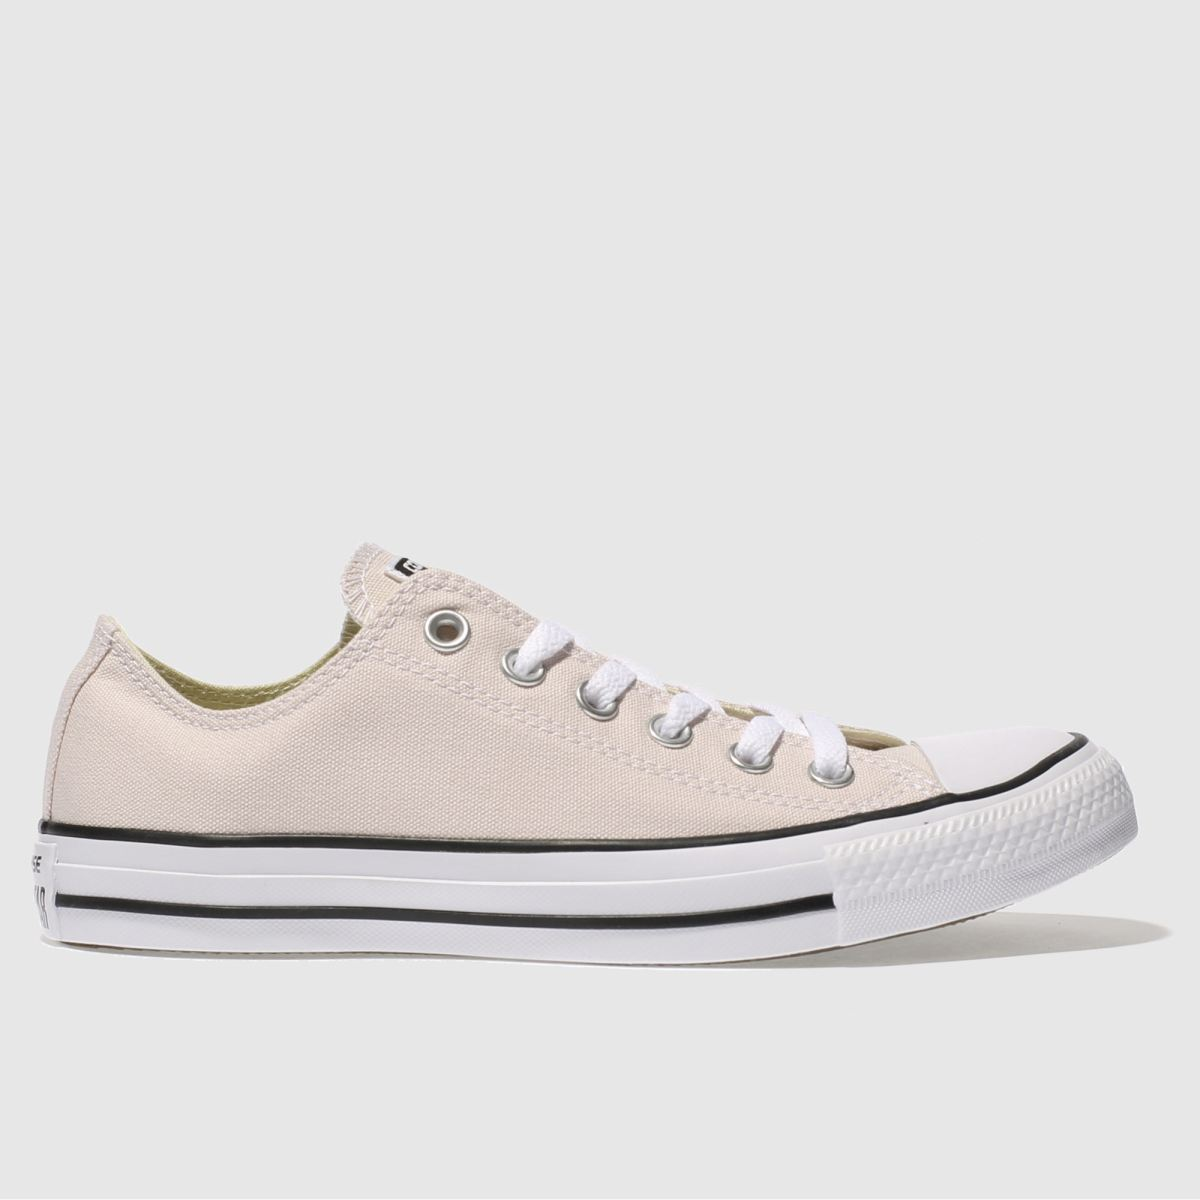 Converse Pale Pink All Star Mineral Shades Ox Trainers